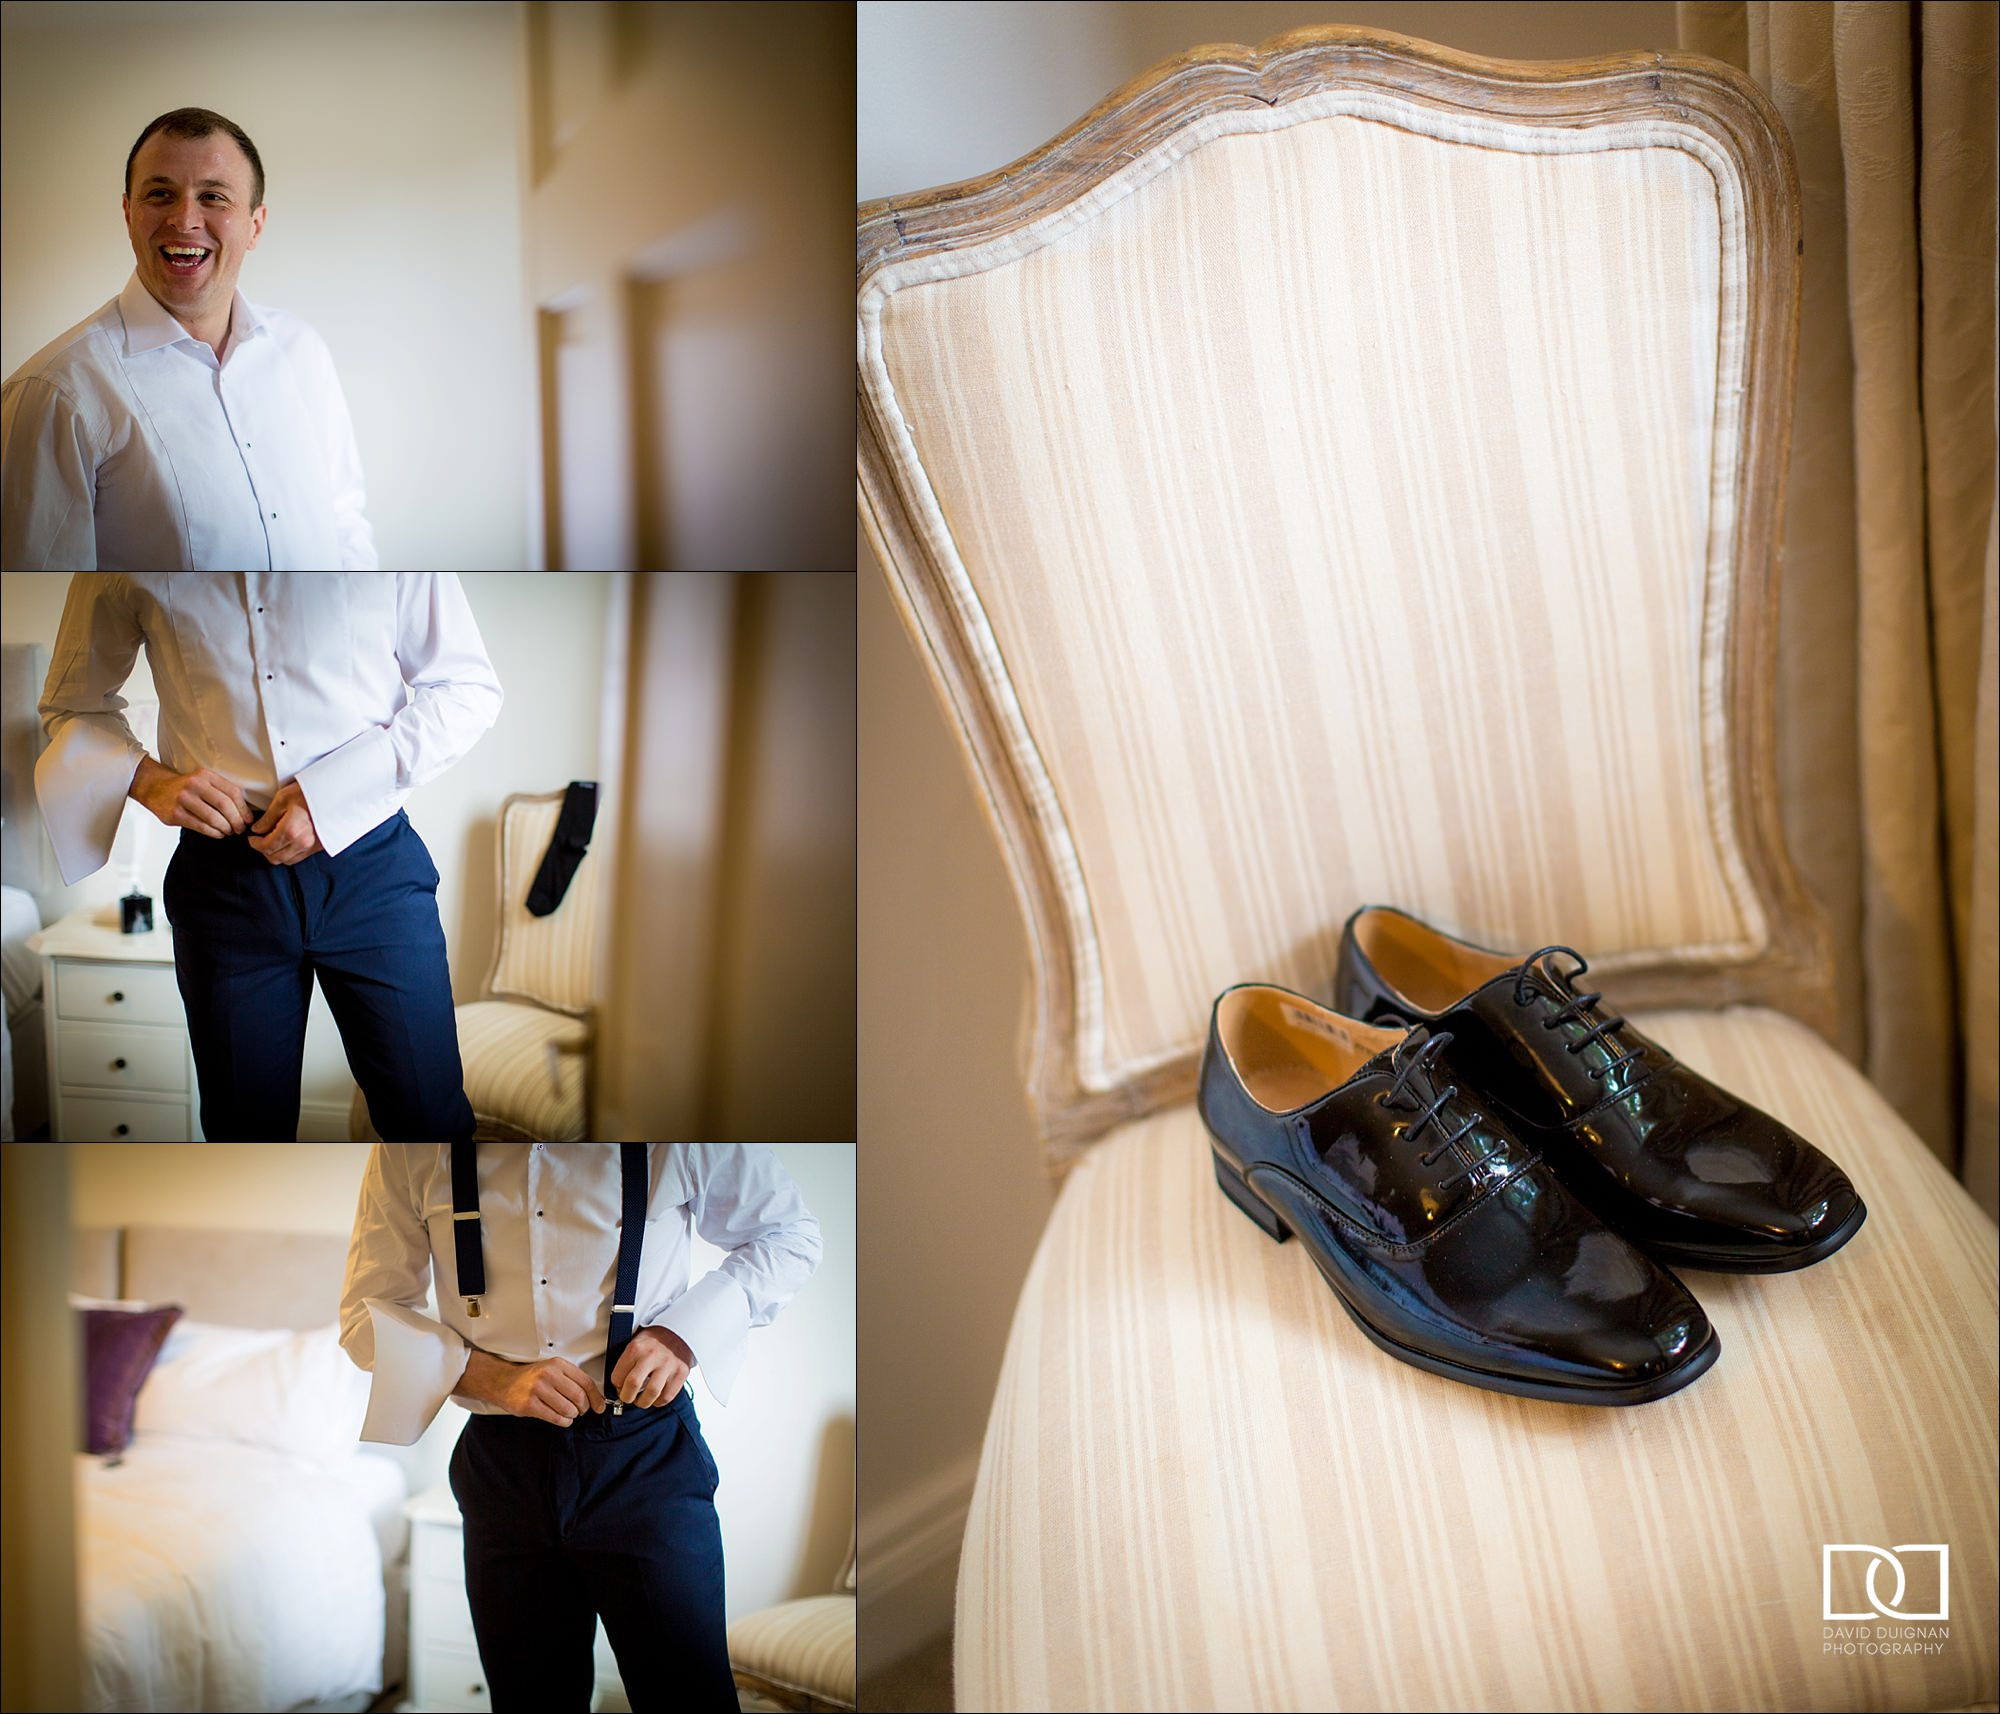 louth wedding photographer david duignan photography castle bellingham wedding Ireland 0015